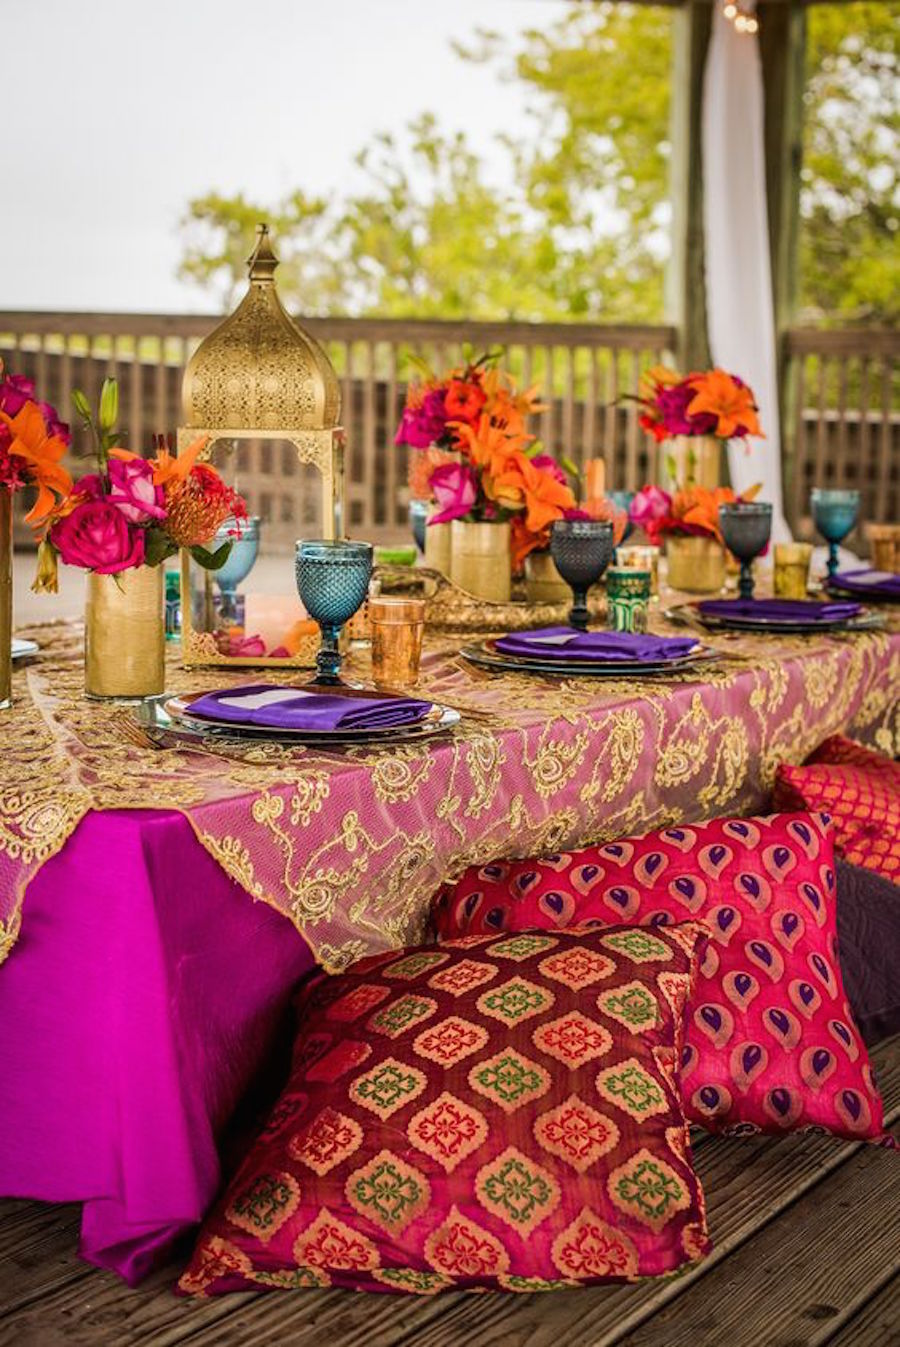 Indian Inspired Wedding Recpetion with Luxurious Gold Embroidered Table Overlays and Fuscia Tablecloths | Tampa Bay Wedding Rental Linens by Connie Duglin Specialty Linens